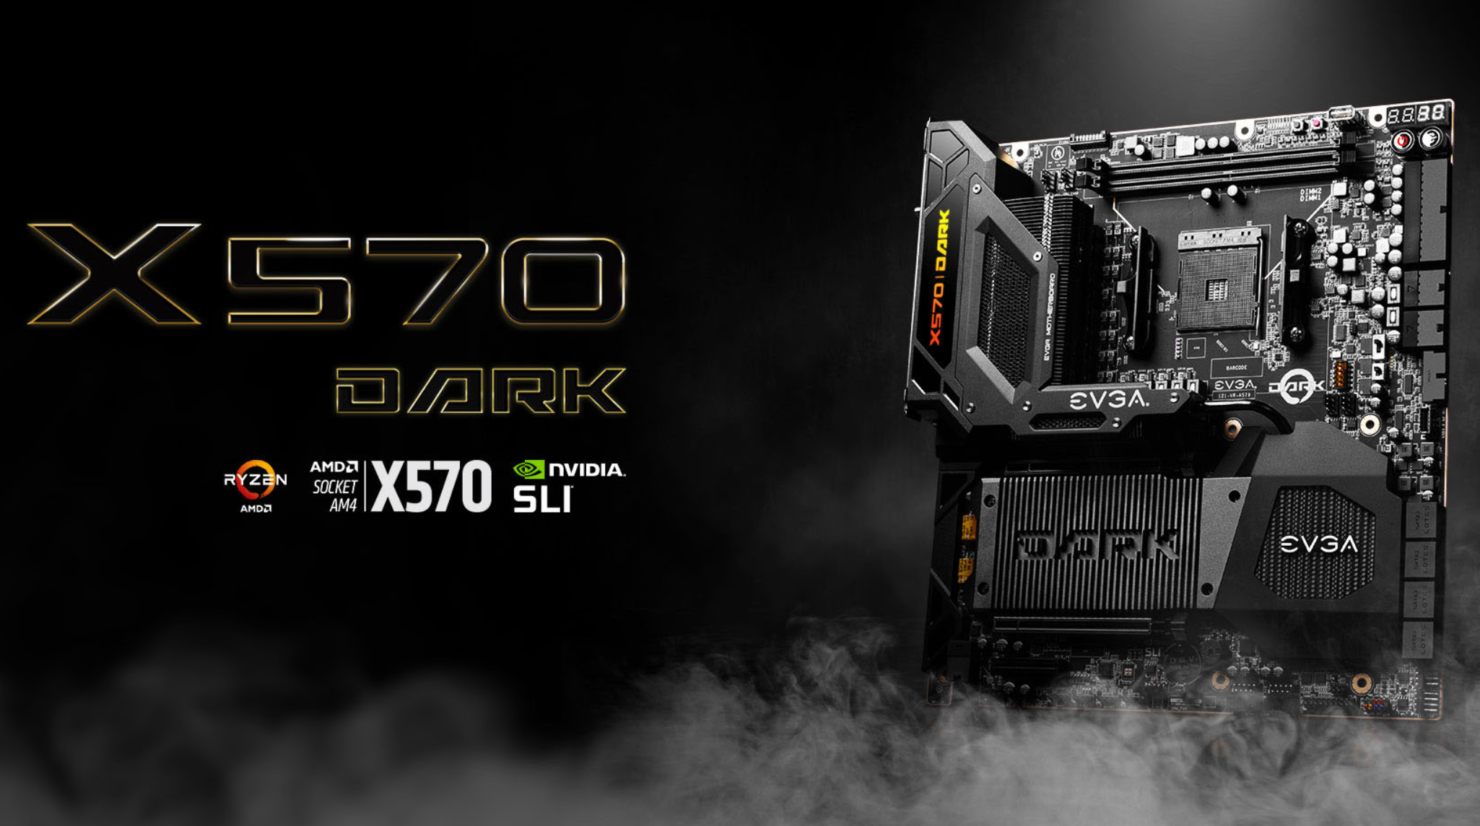 evga-unleashes-the-x570-dark-motherboard-for-amd-ryzen-cpus,-priced-at-$689.99-us